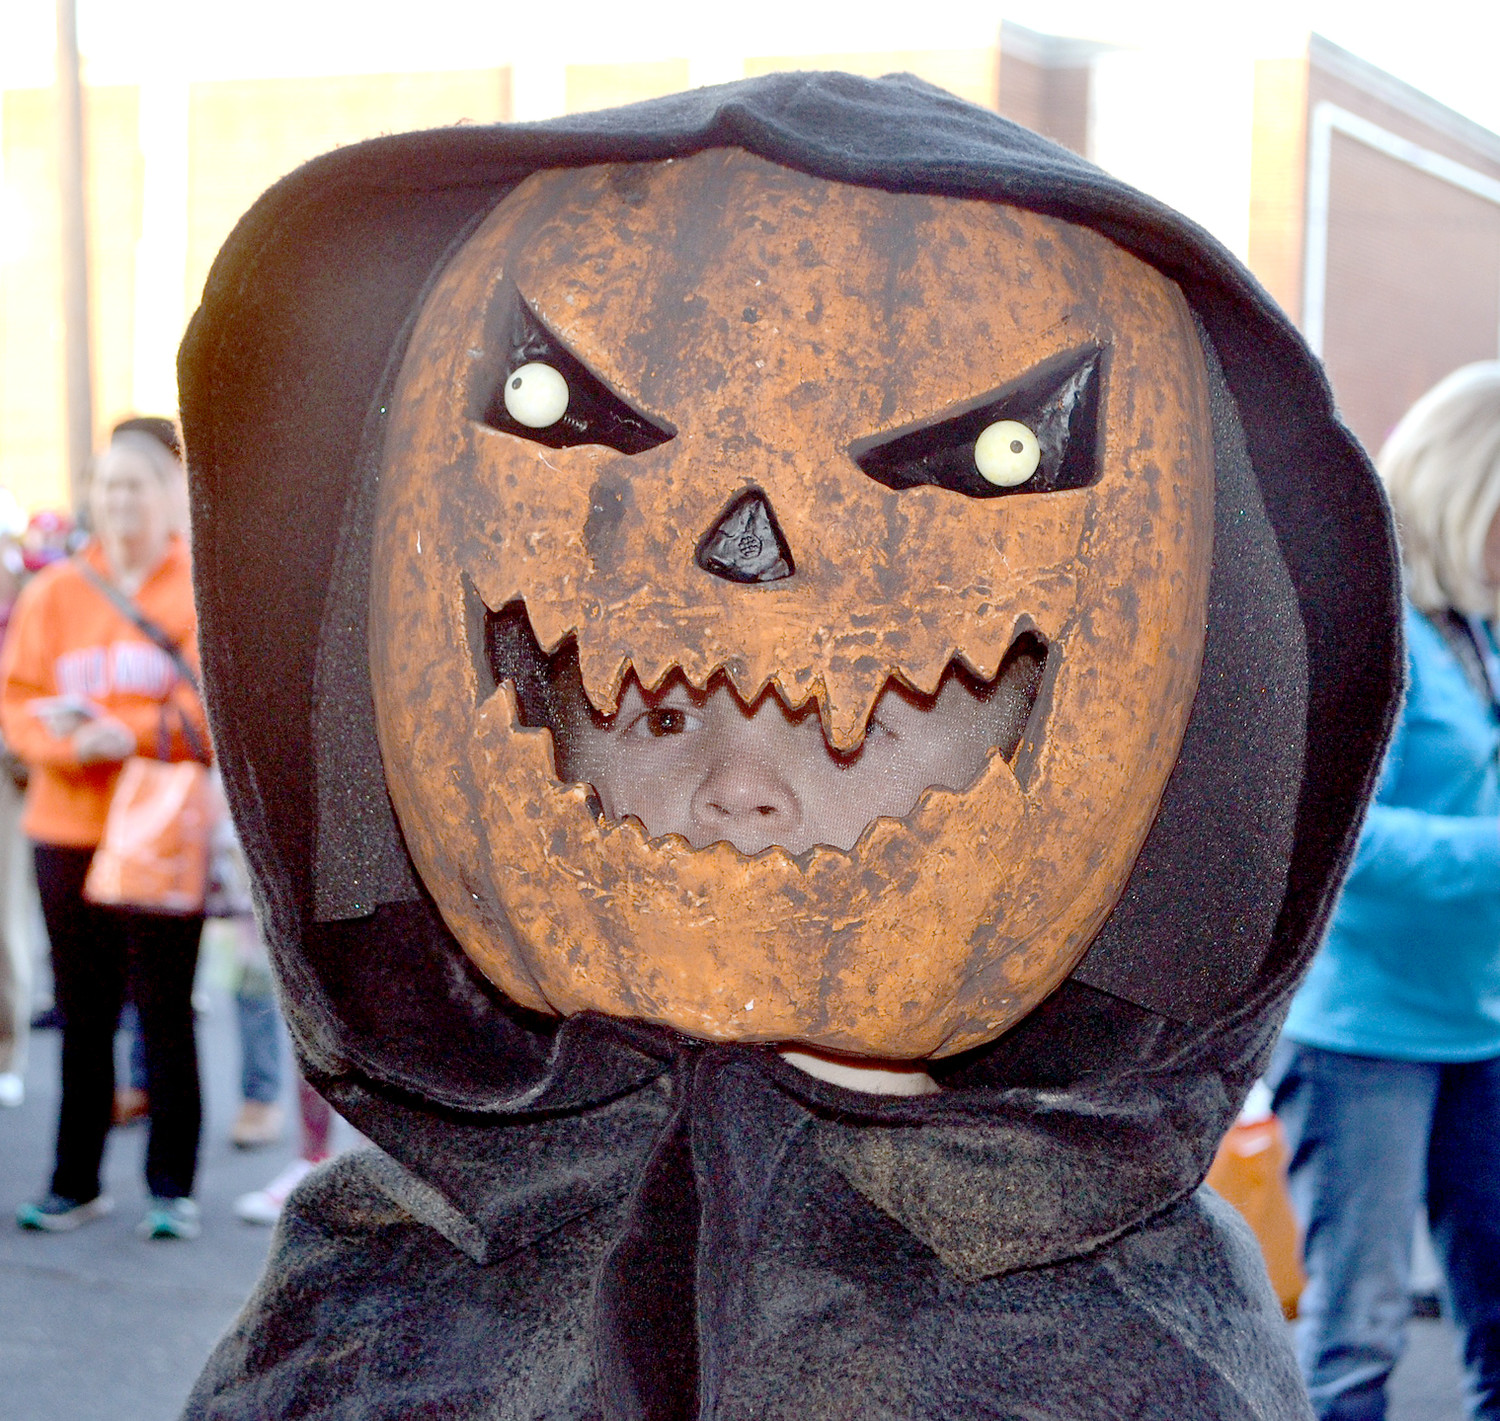 PUMPKINHEAD was a hit among the costume contestants Tuesday night at the Downtown Block Party.